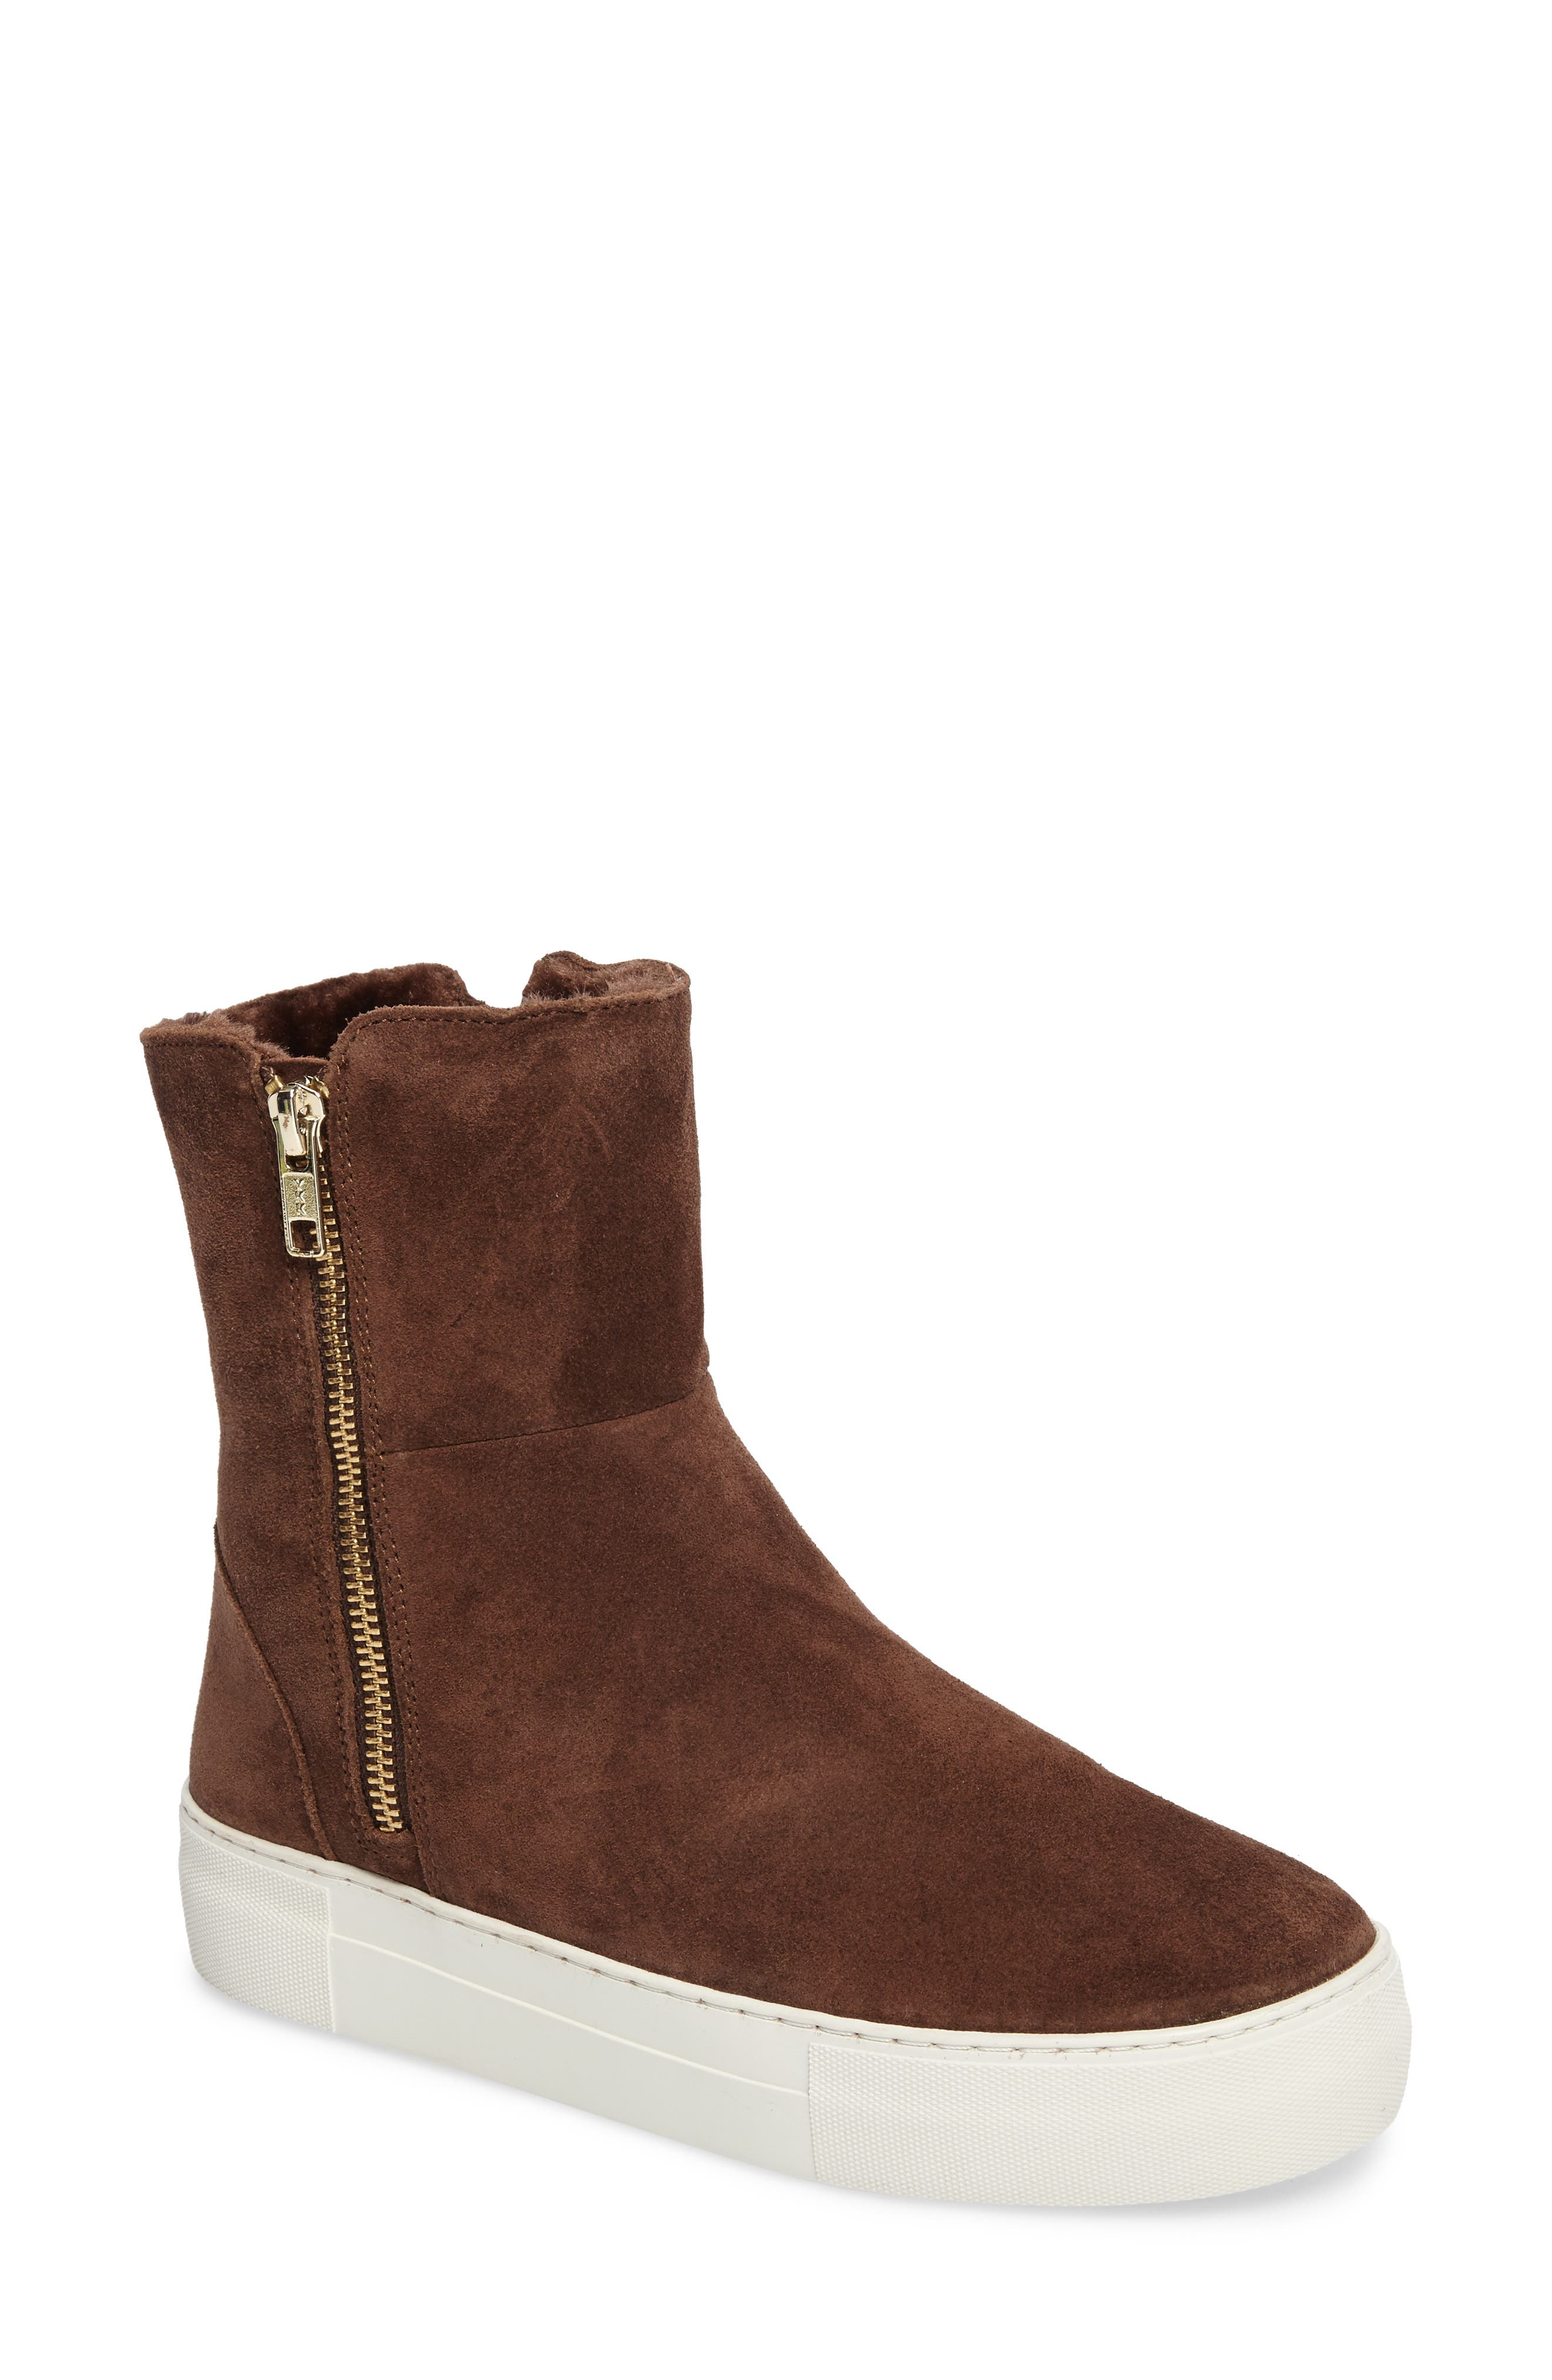 Allie Faux Fur Lined Platform Boot,                         Main,                         color, BROWN SUEDE